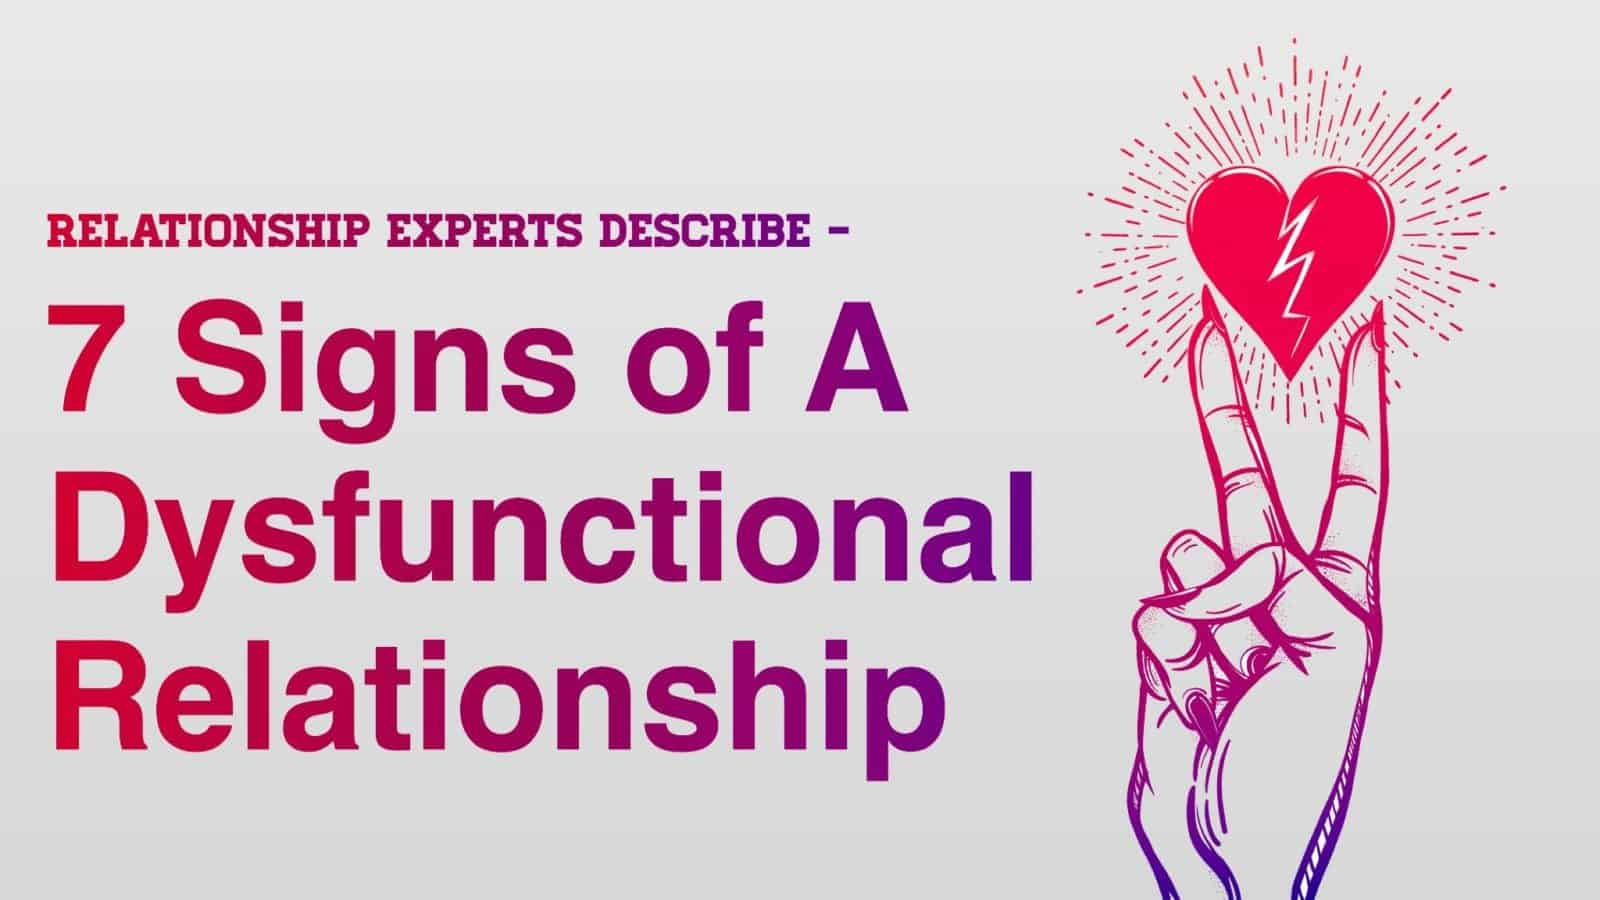 relationship experts describe the 7 signs of a dysfunctional